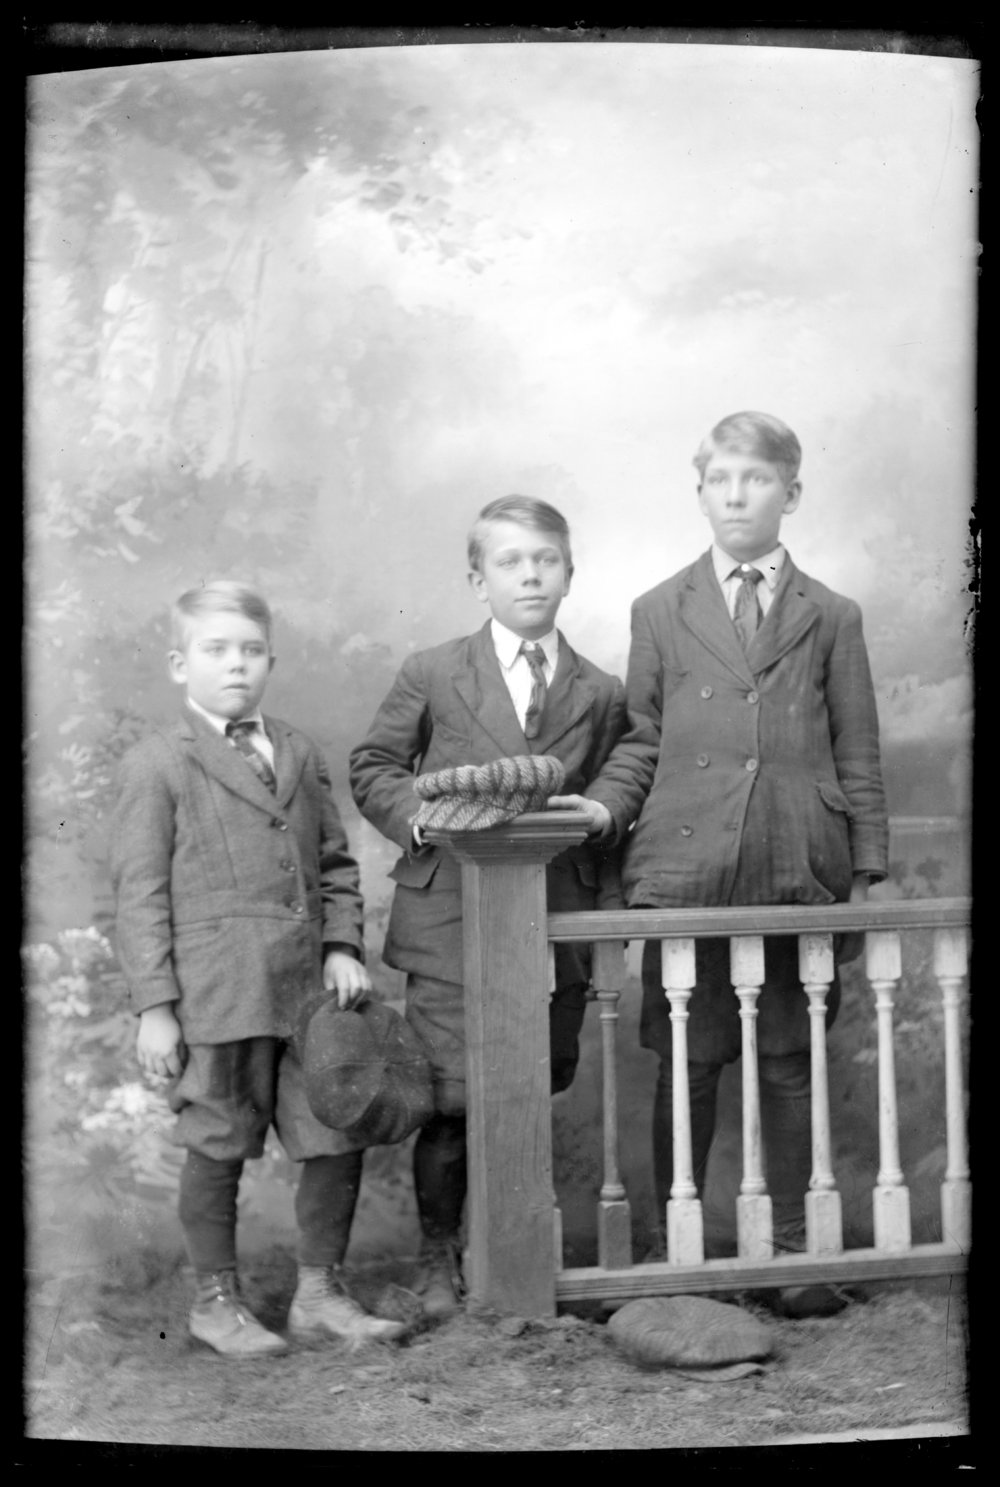 Michael A. Kennedy photo collection, St. Paul, Kansas - Photograph of three boys dressed in suits